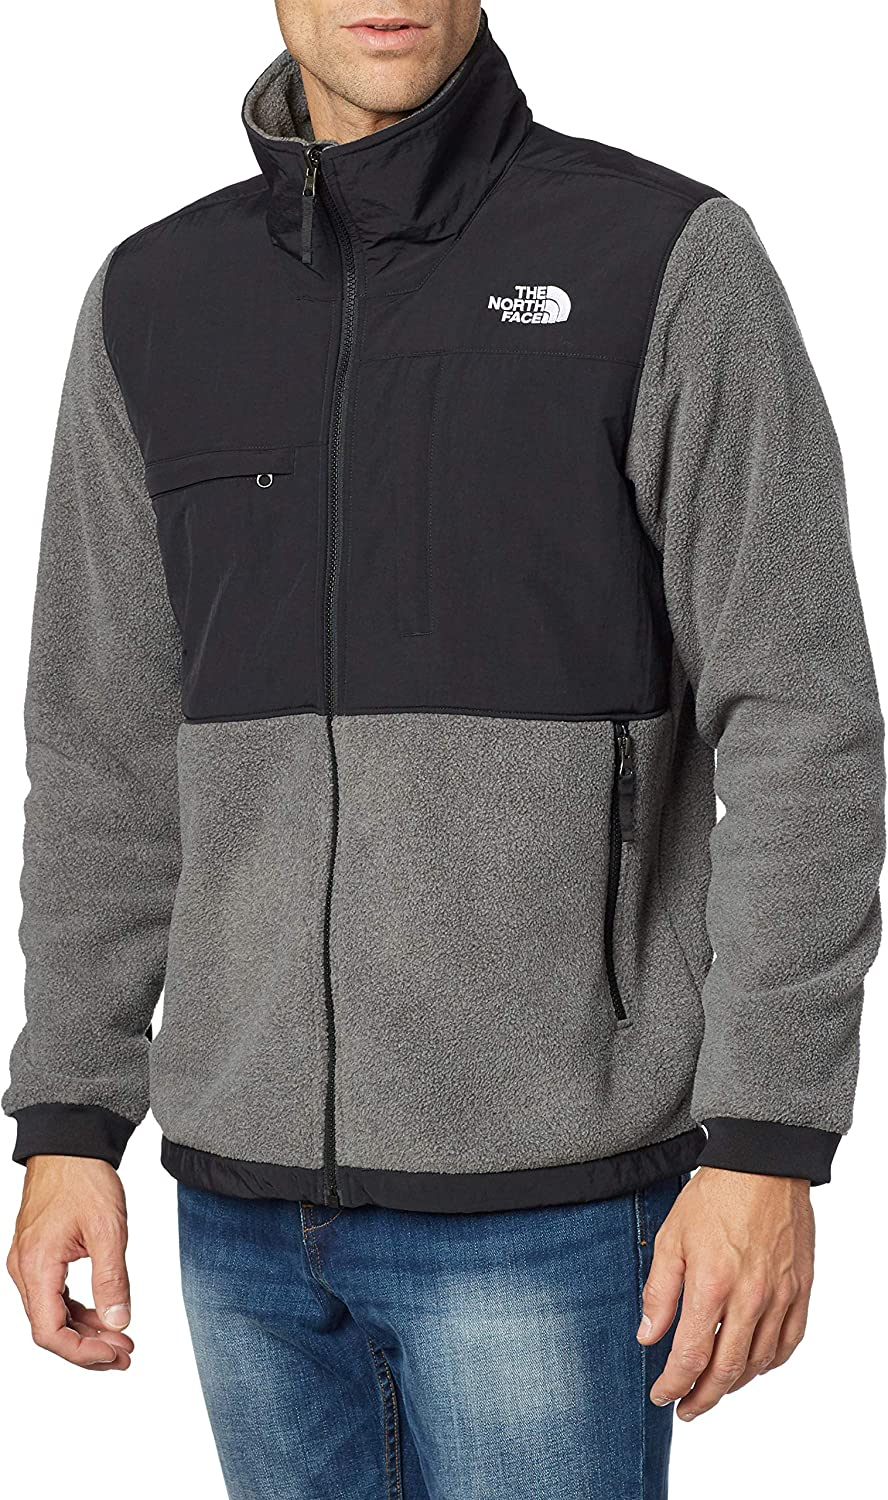 The North Face Chaqueta Denali Gris Hombre